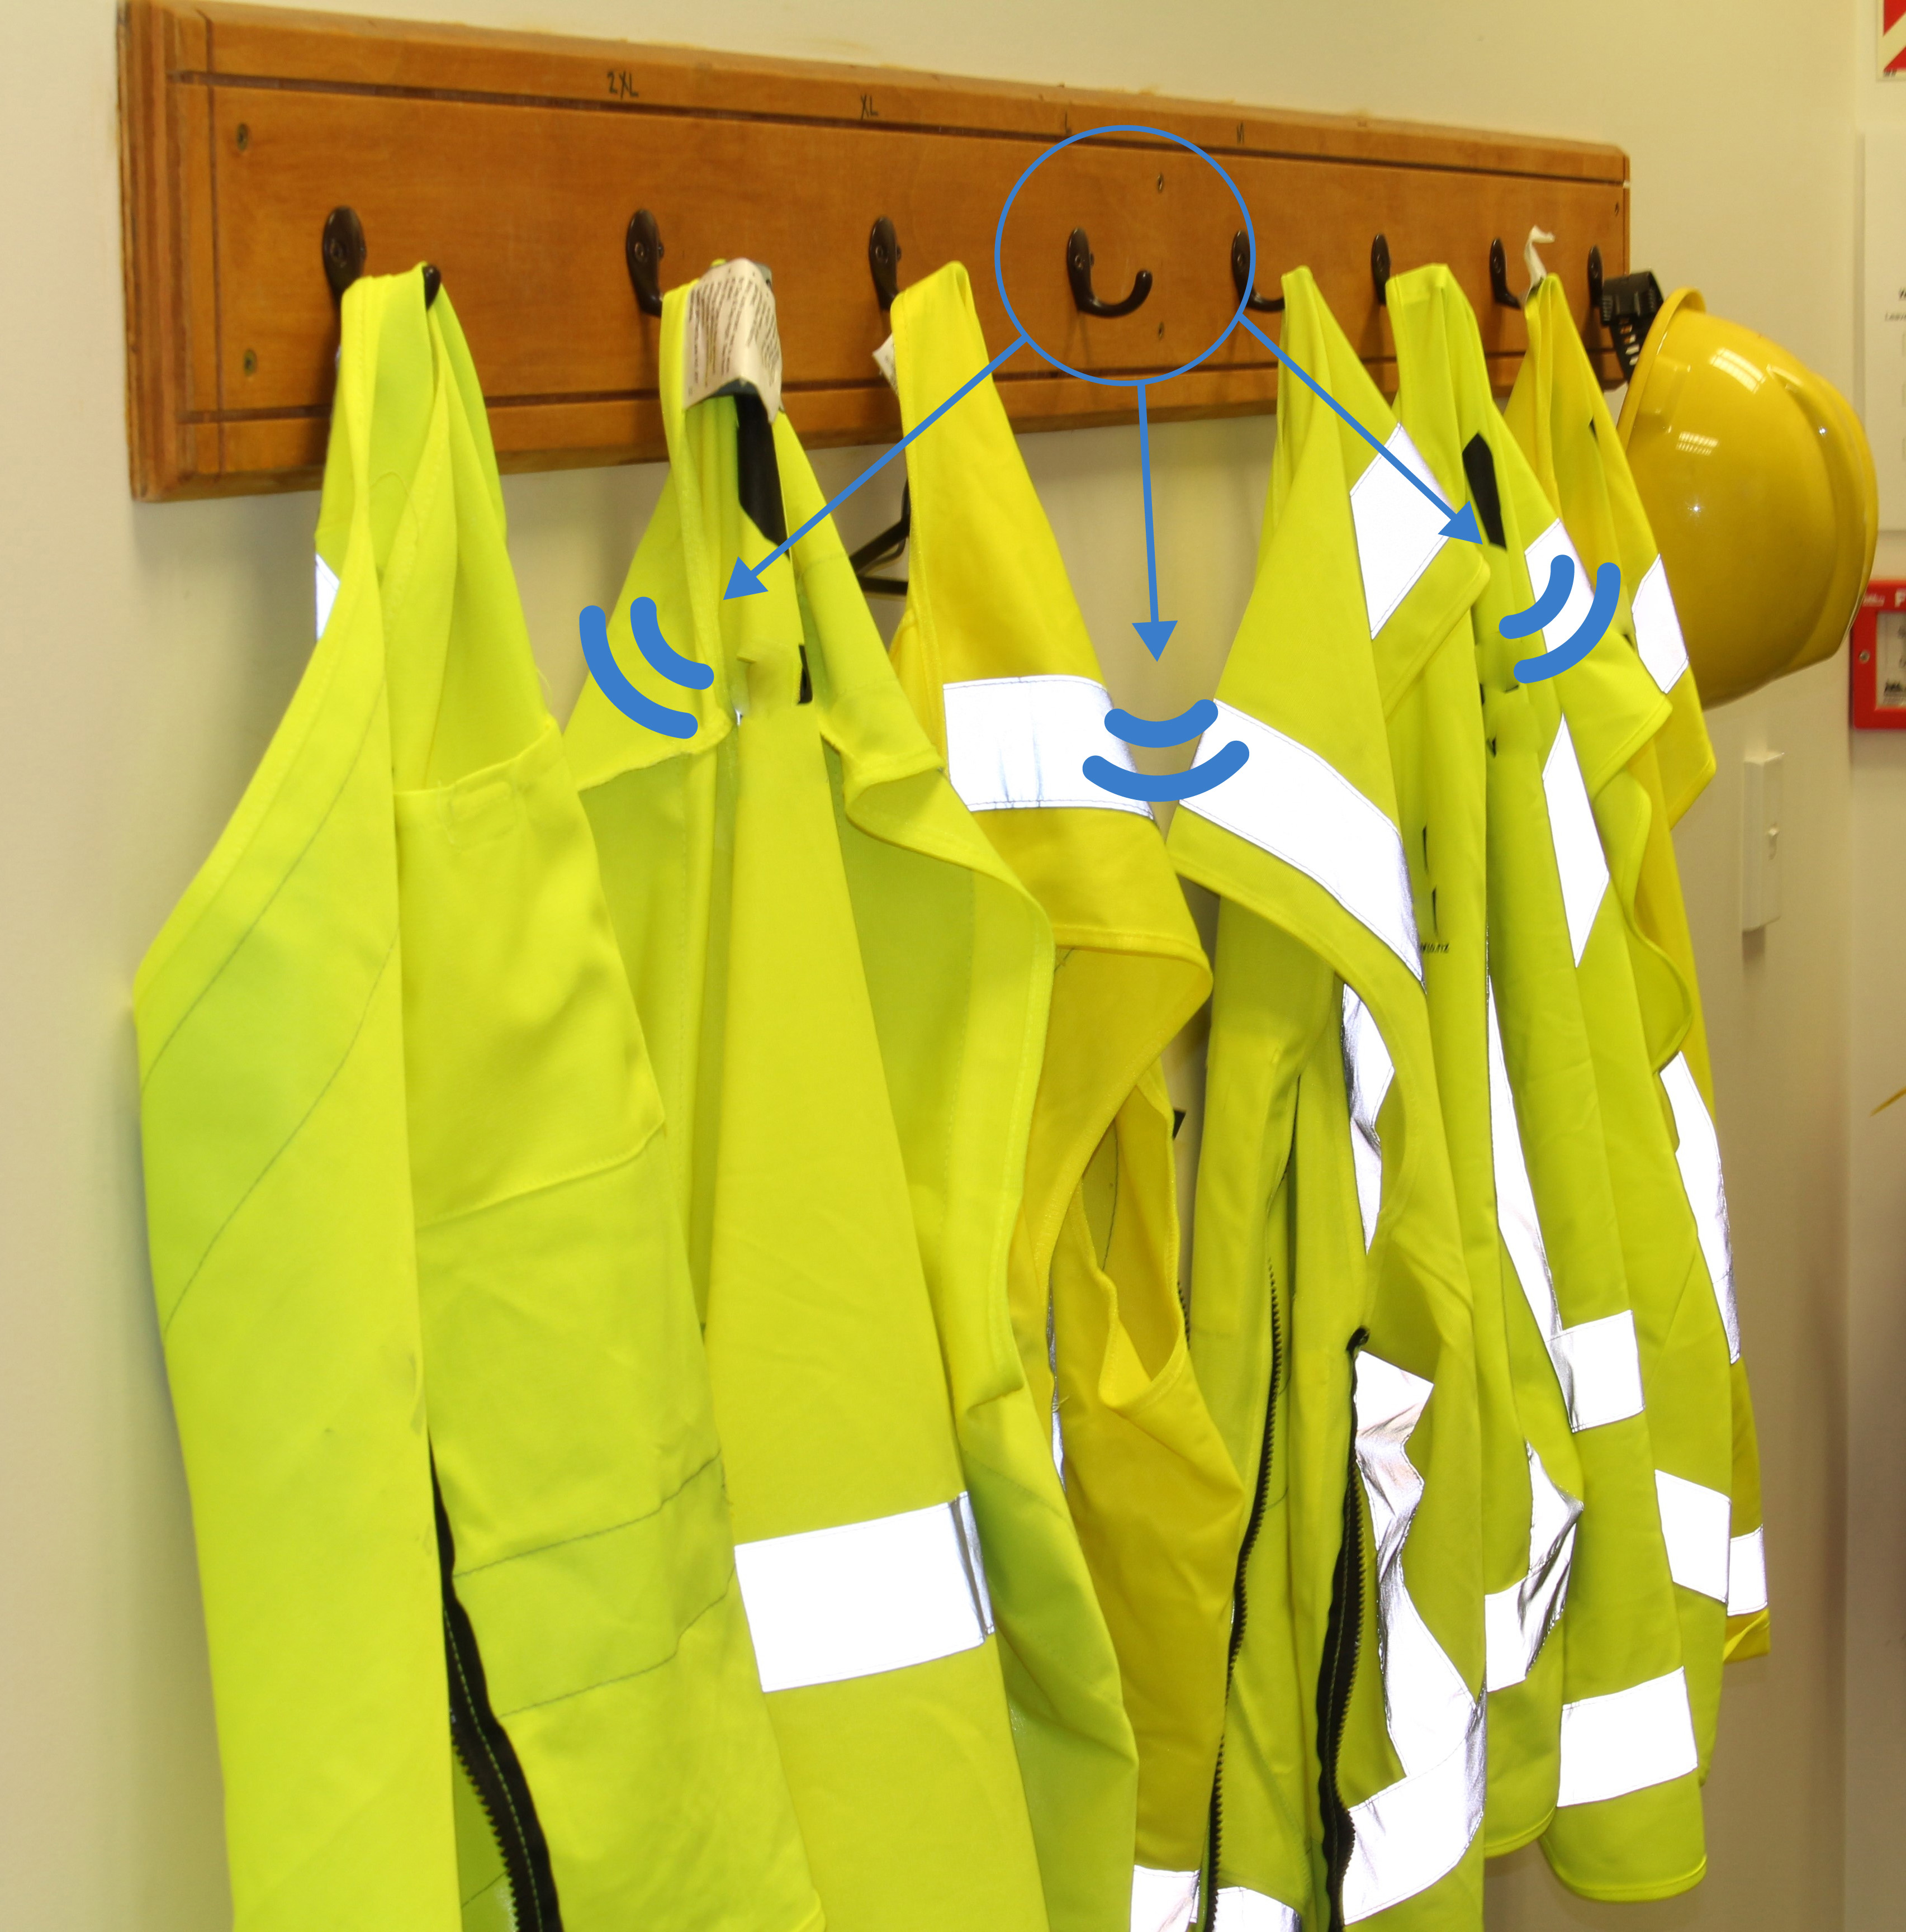 High visibility jackets charging on a coat rack embedded with Powercast's wireless charging technology